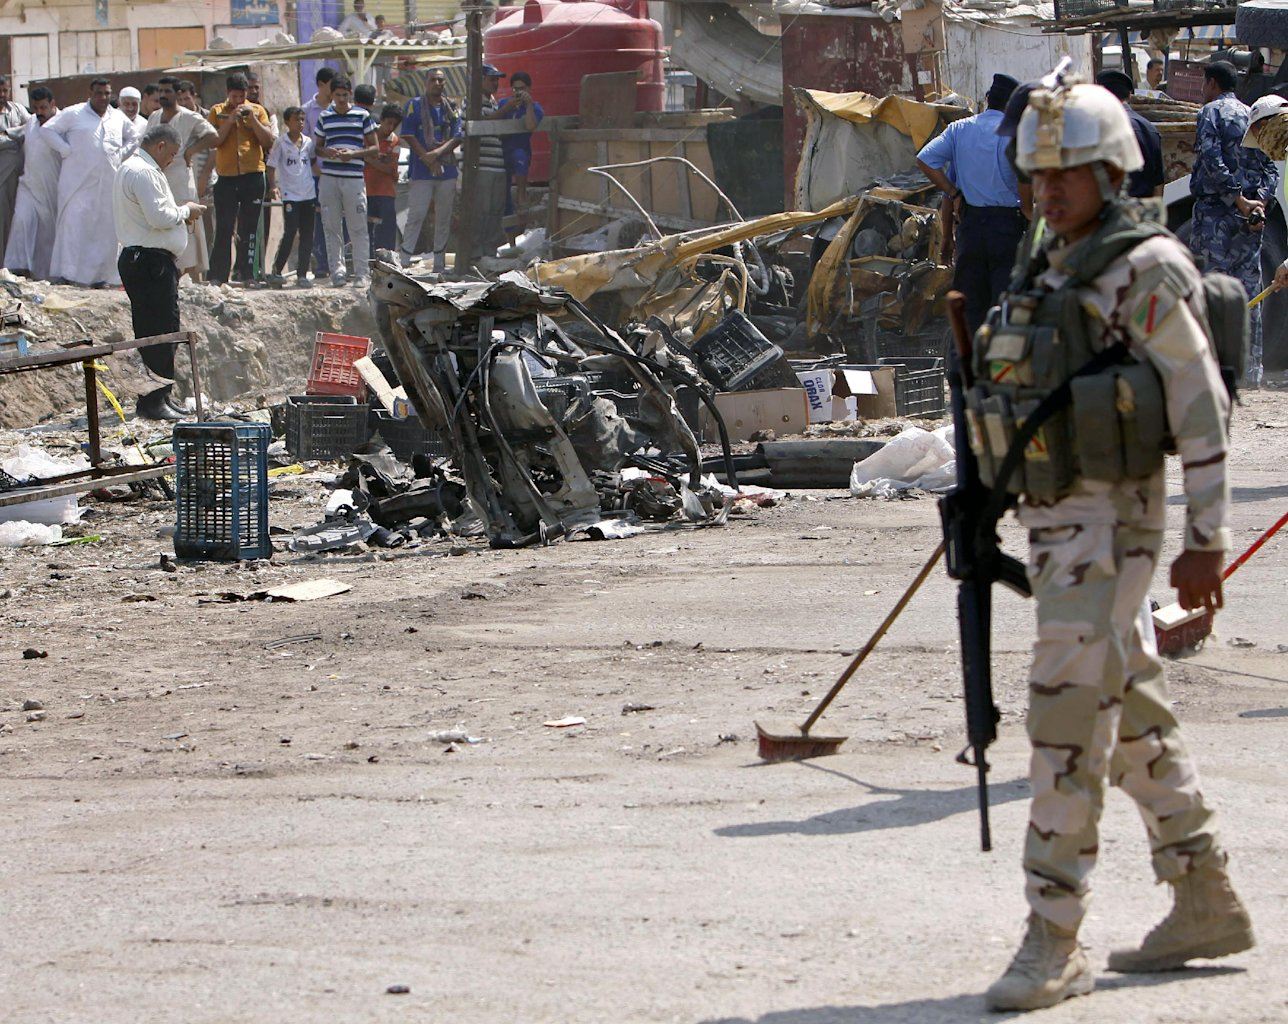 An Iraqi soldier stands guard as security forces inspect the scene of a car bomb attack in Basra, 340 miles (550 kilometers) southeast of Baghdad, Iraq, Sunday, Sept. 9, 2012. In violence, which struck at least 10 cities across the nation Insurgents killed at least 39 people in a wave of attacks against Iraqi security forces on Sunday, gunning down soldiers at an army post and bombing police recruits waiting in line to apply for jobs, officials said.